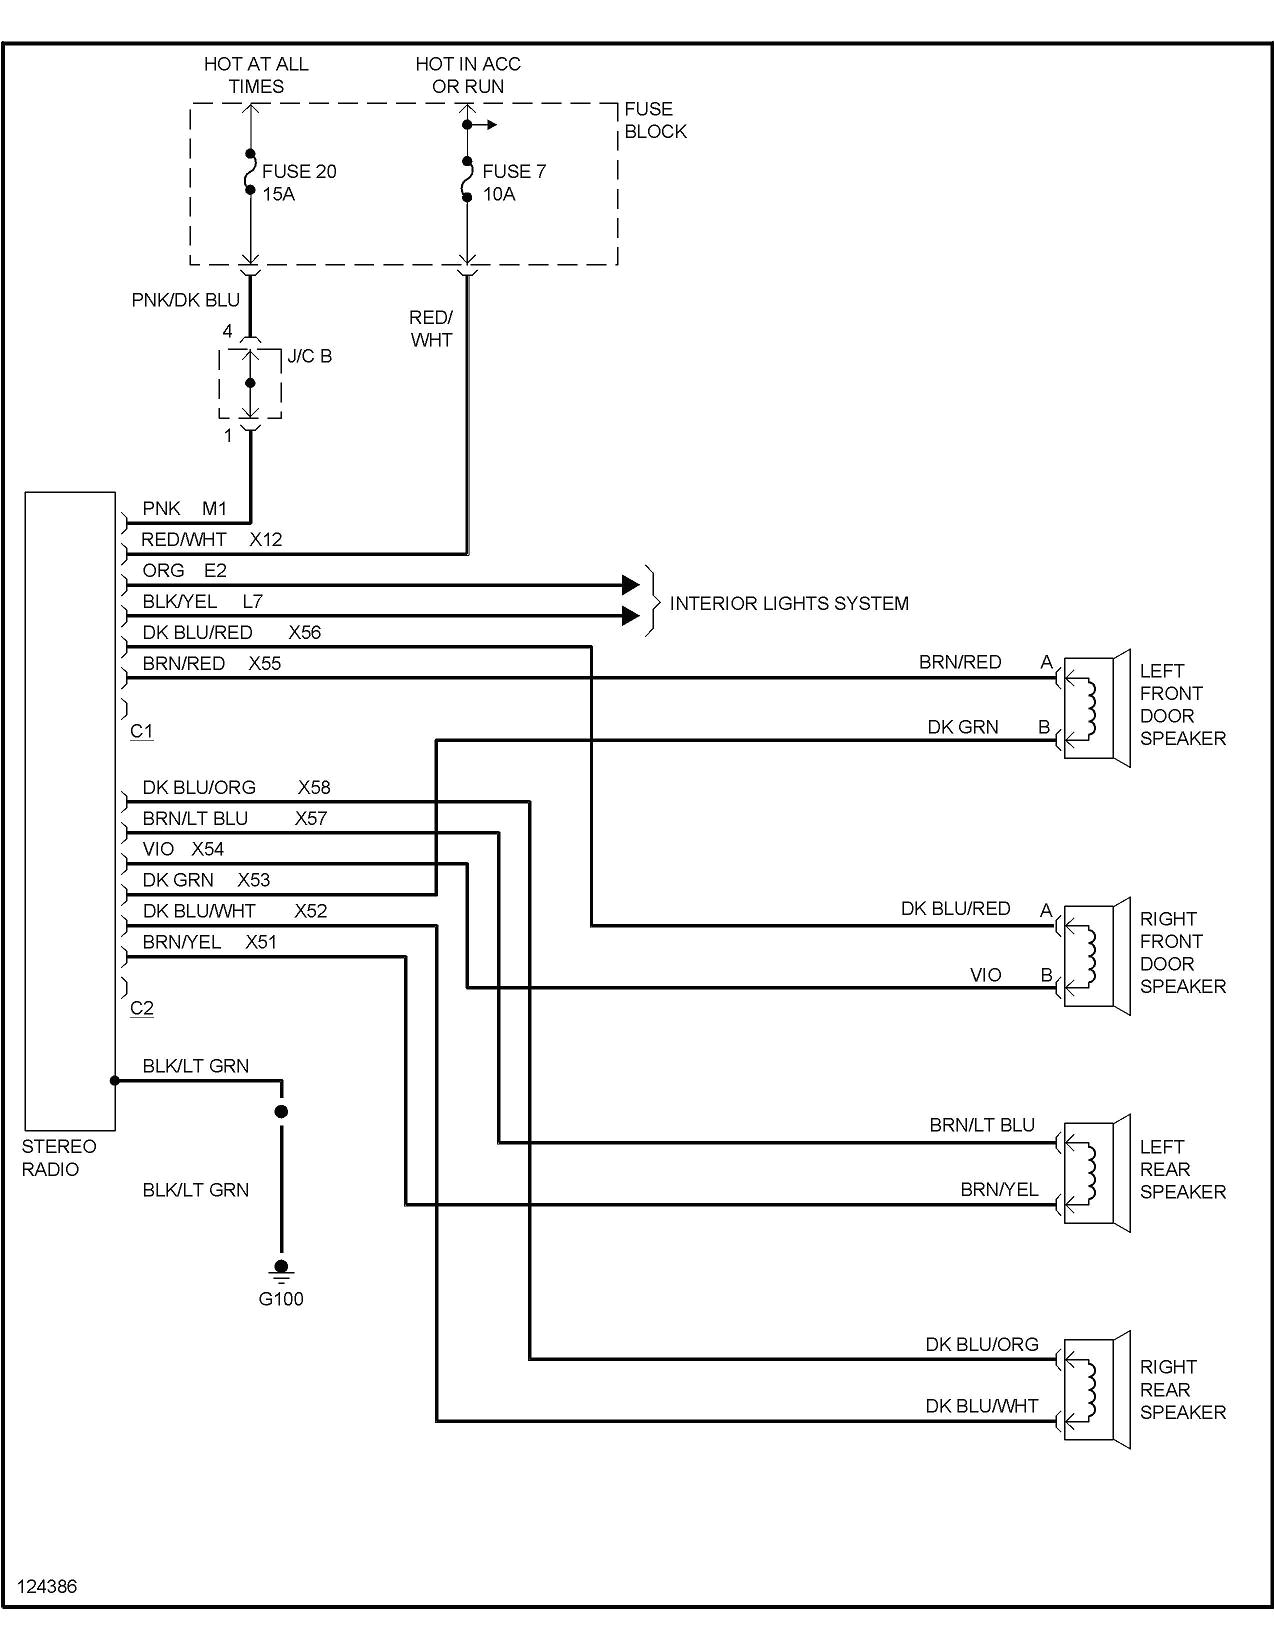 Wiring Diagram For 2005 Dodge Ram from autocardesign.org